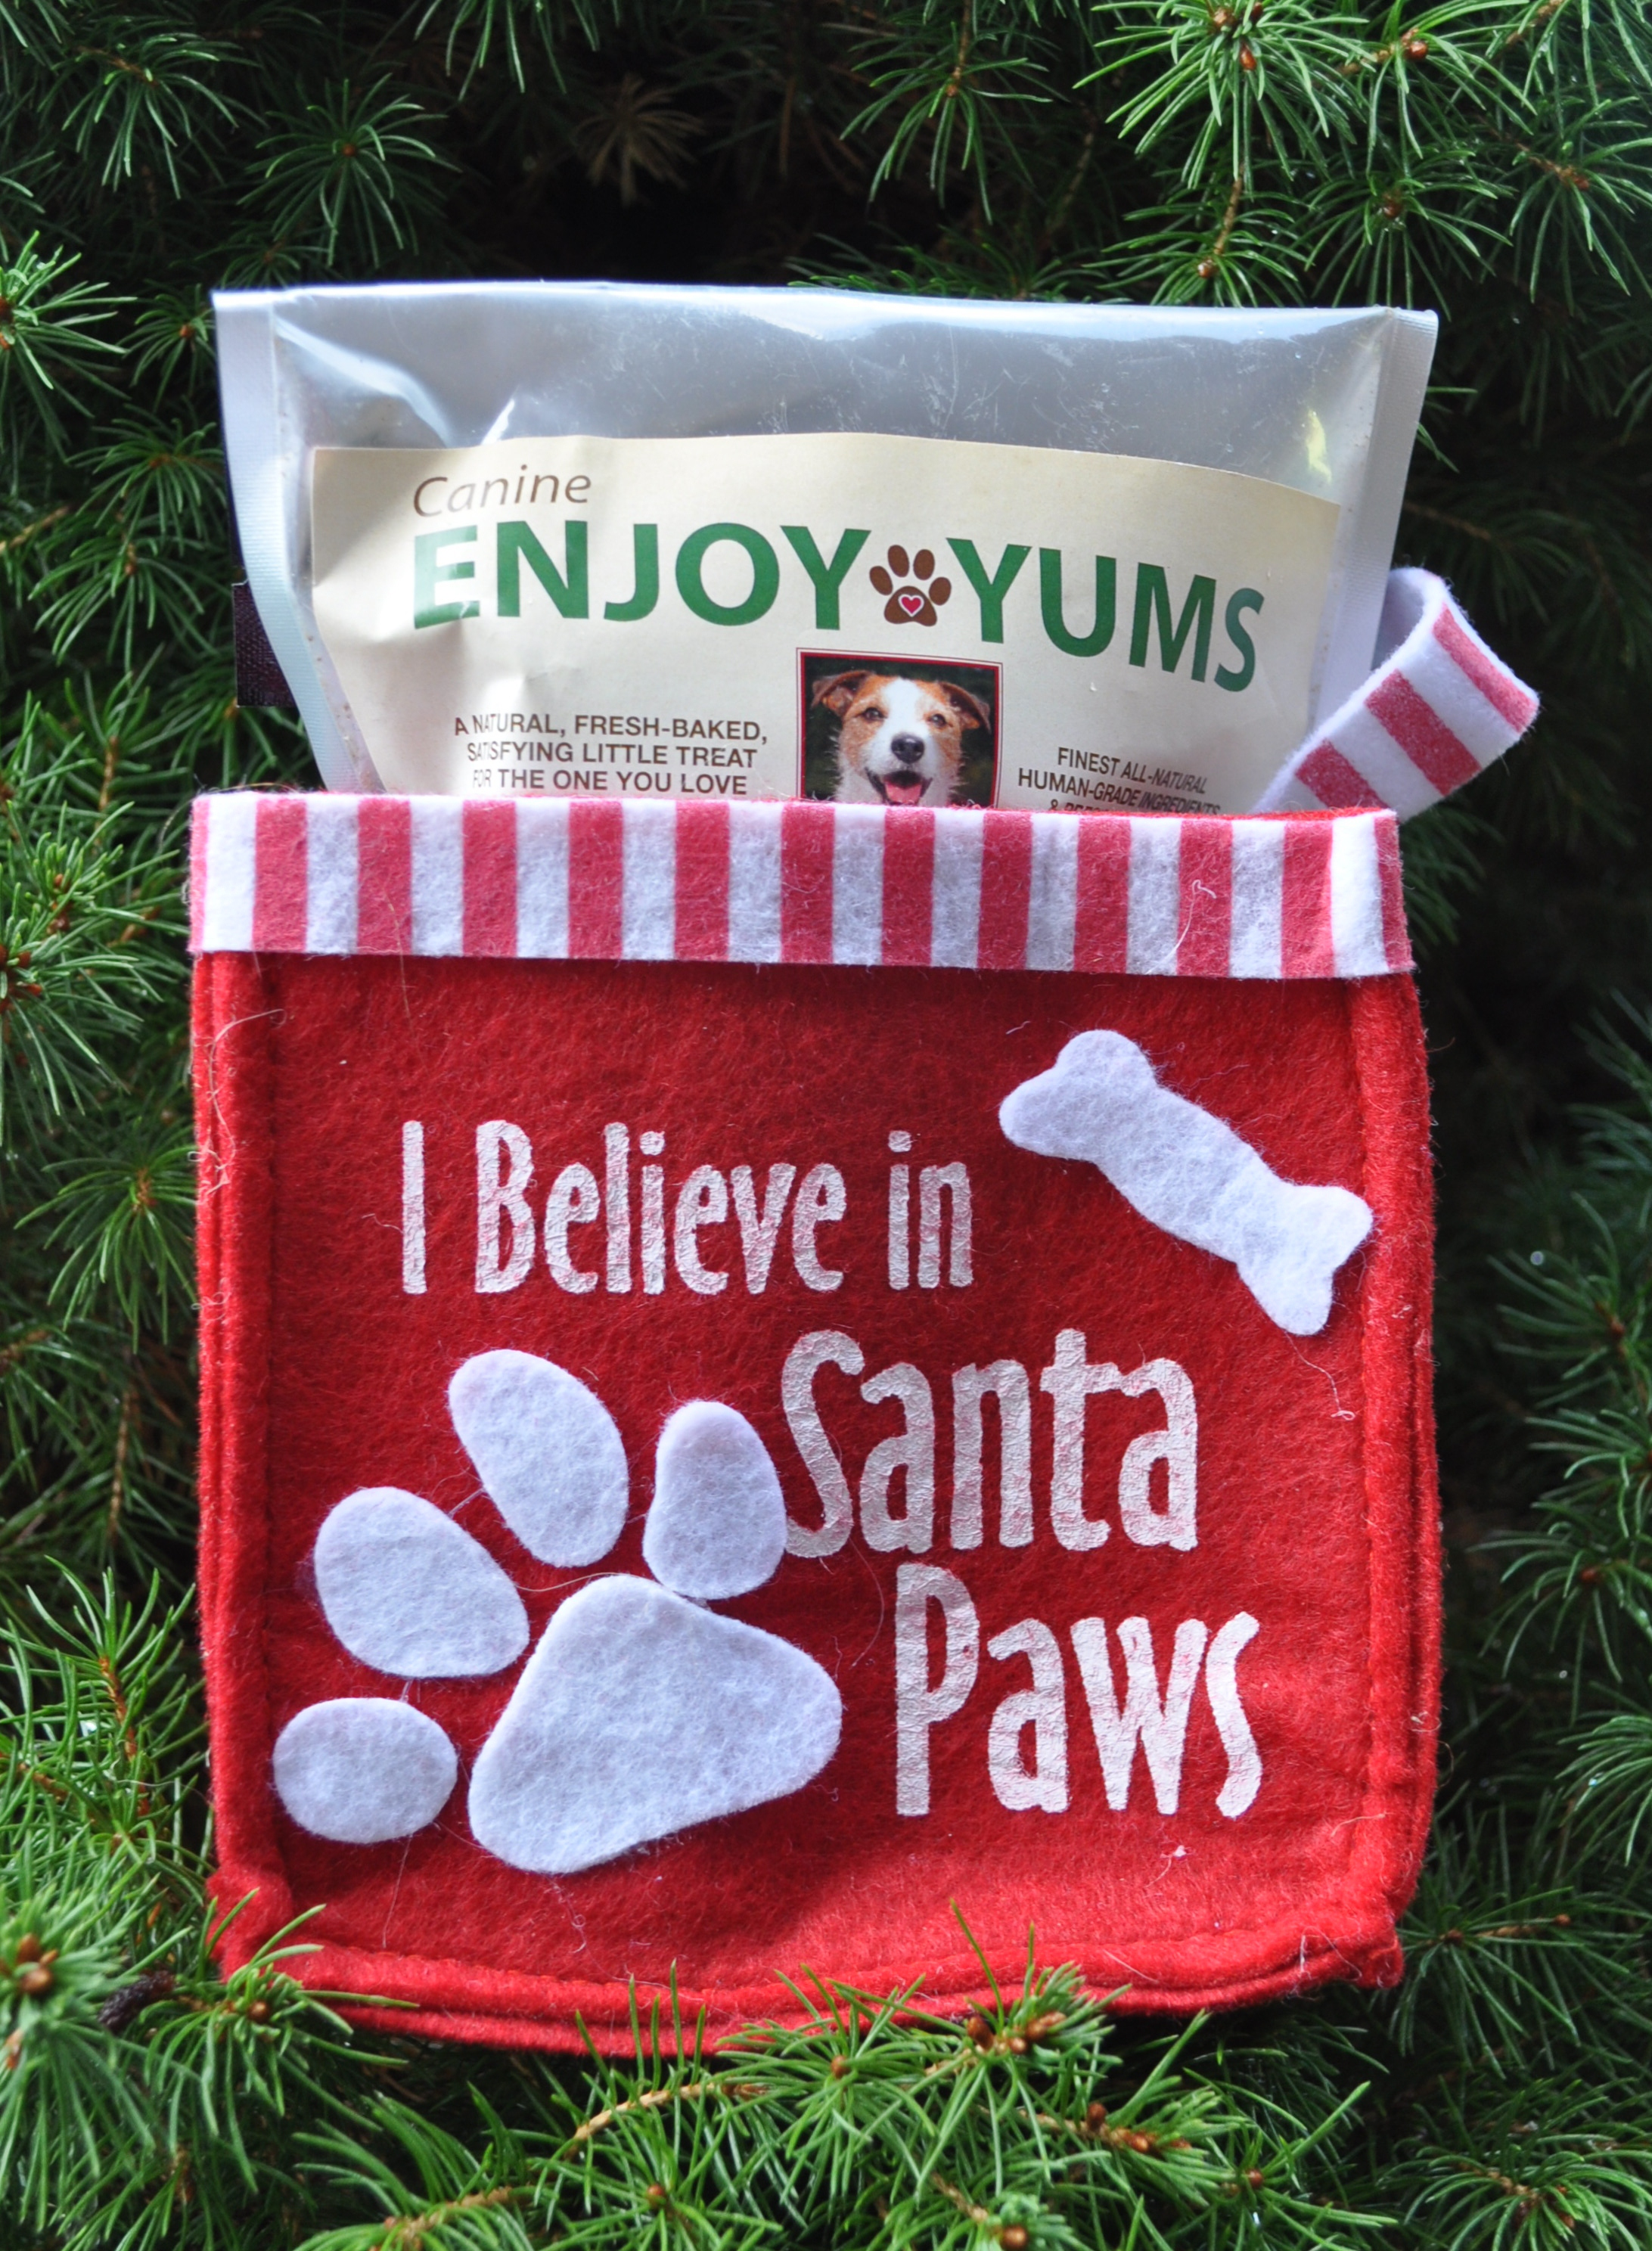 "I Believe in Santa Paws"" Canine Enjoy Yums Bag"